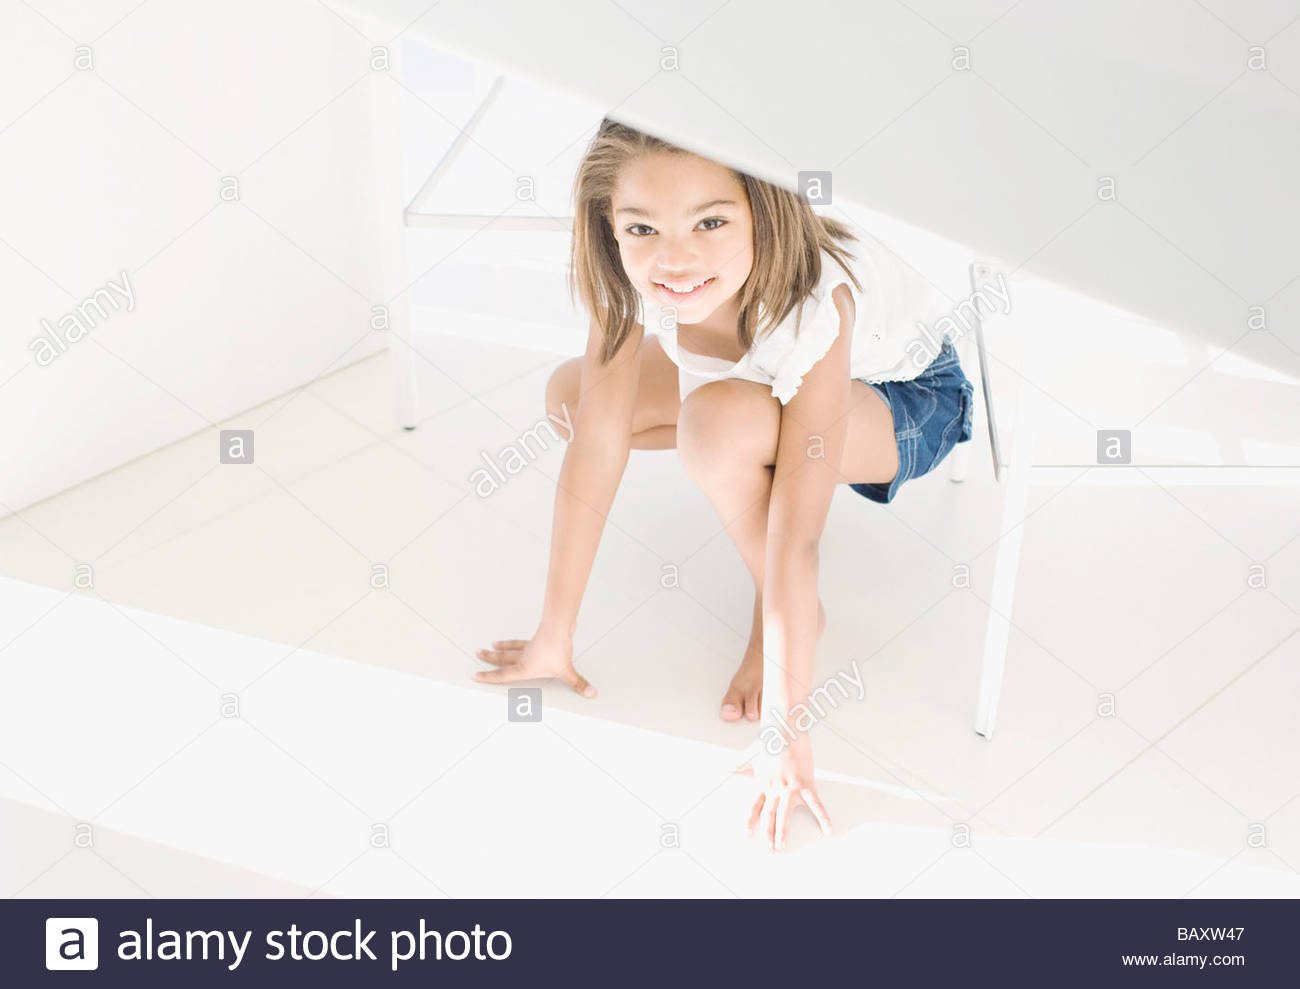 African girl crouching and smiling - Stock Image